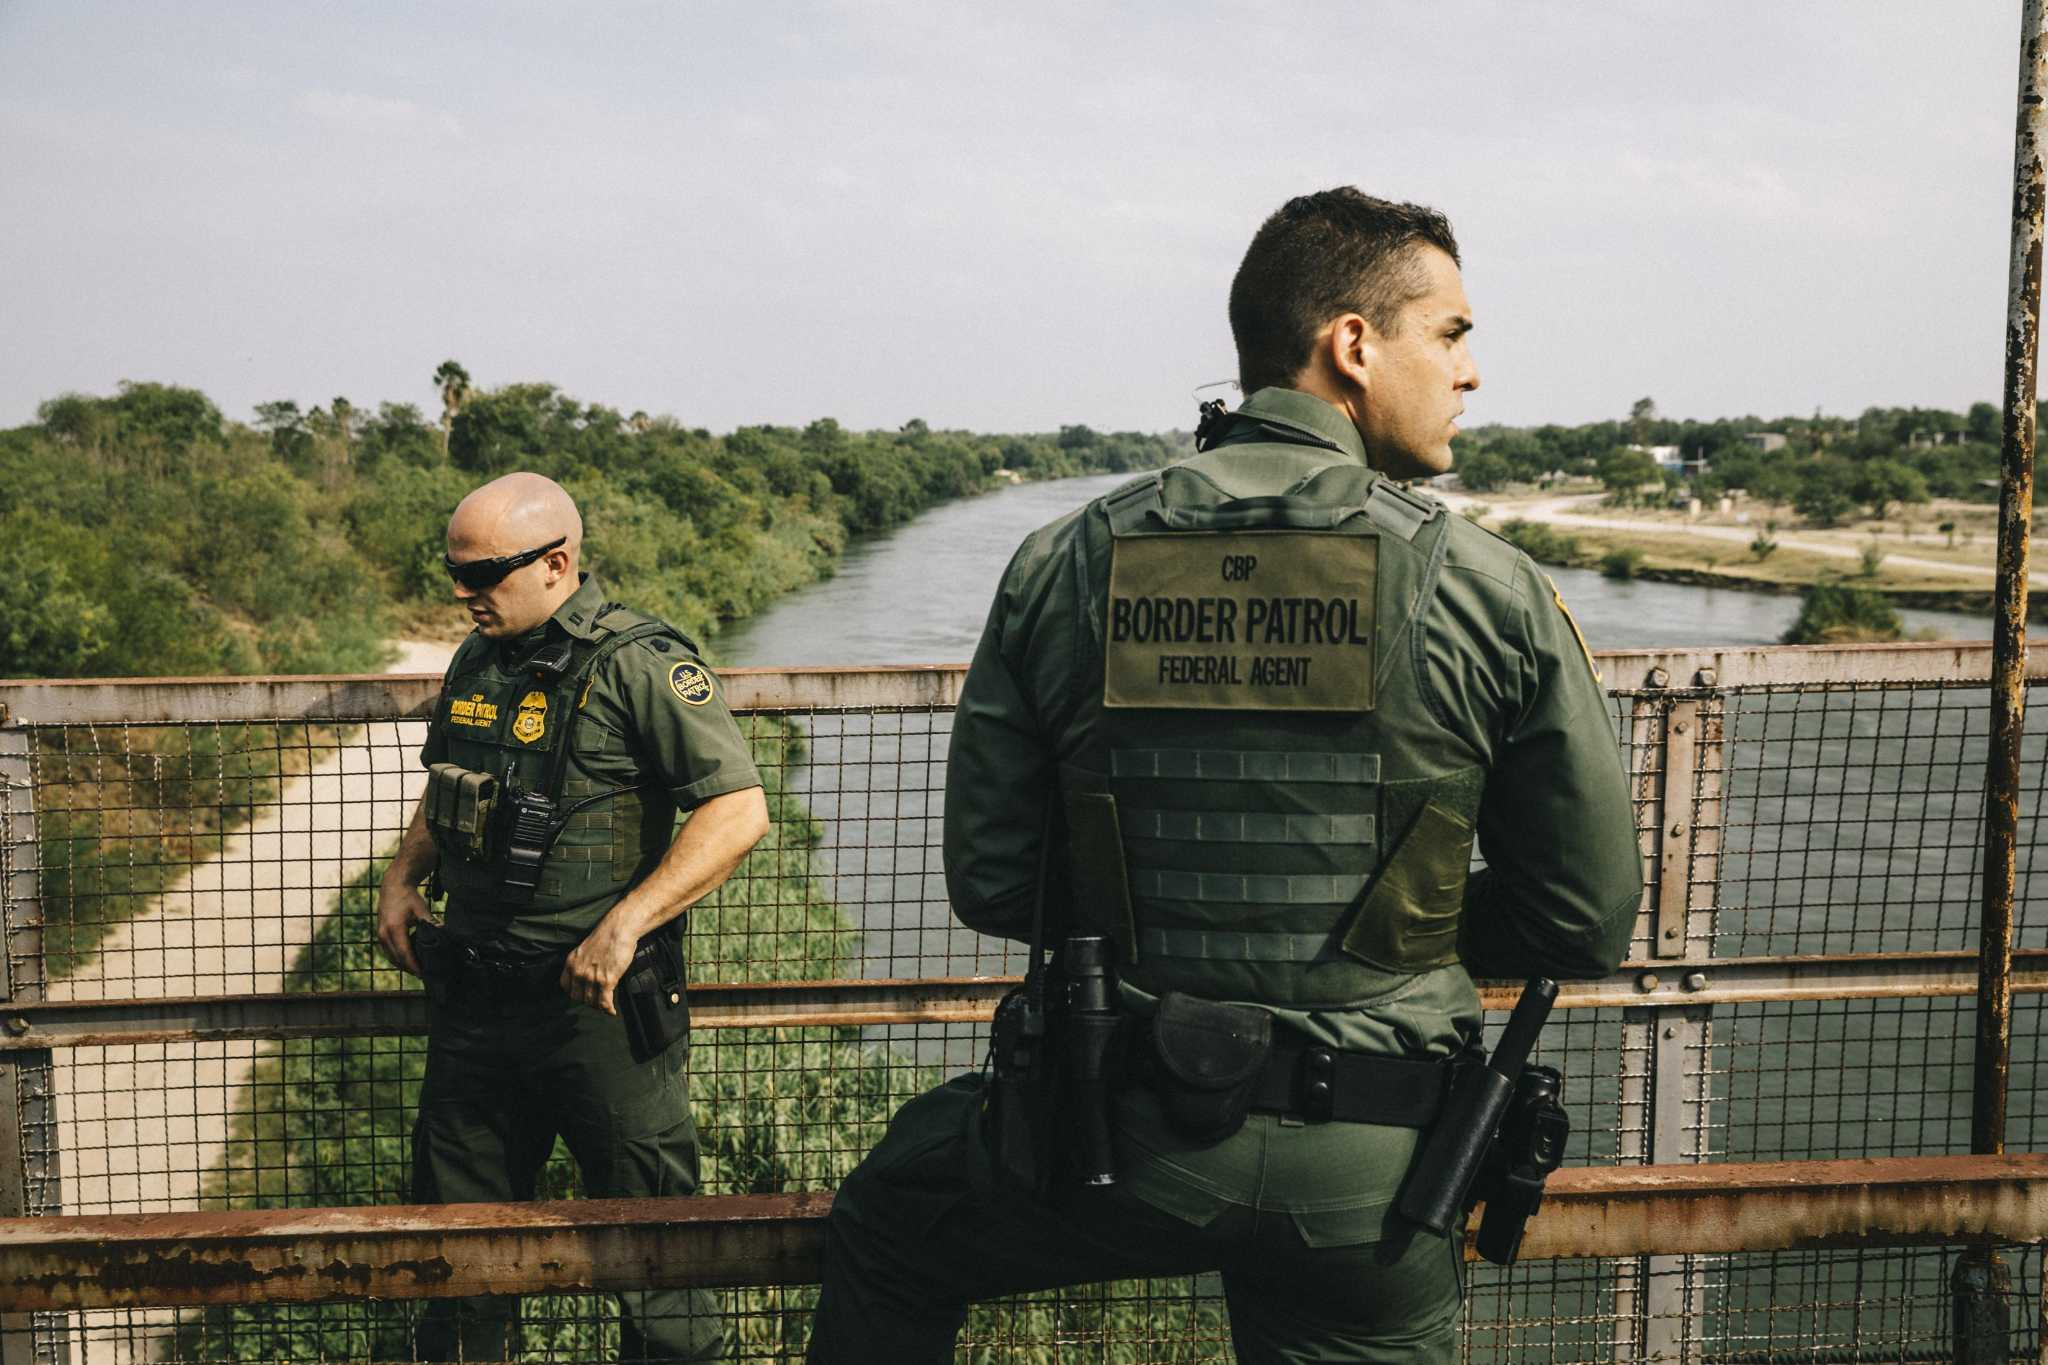 Two men sentenced to prison in human smuggling case that resulted in Rio Grande drownings